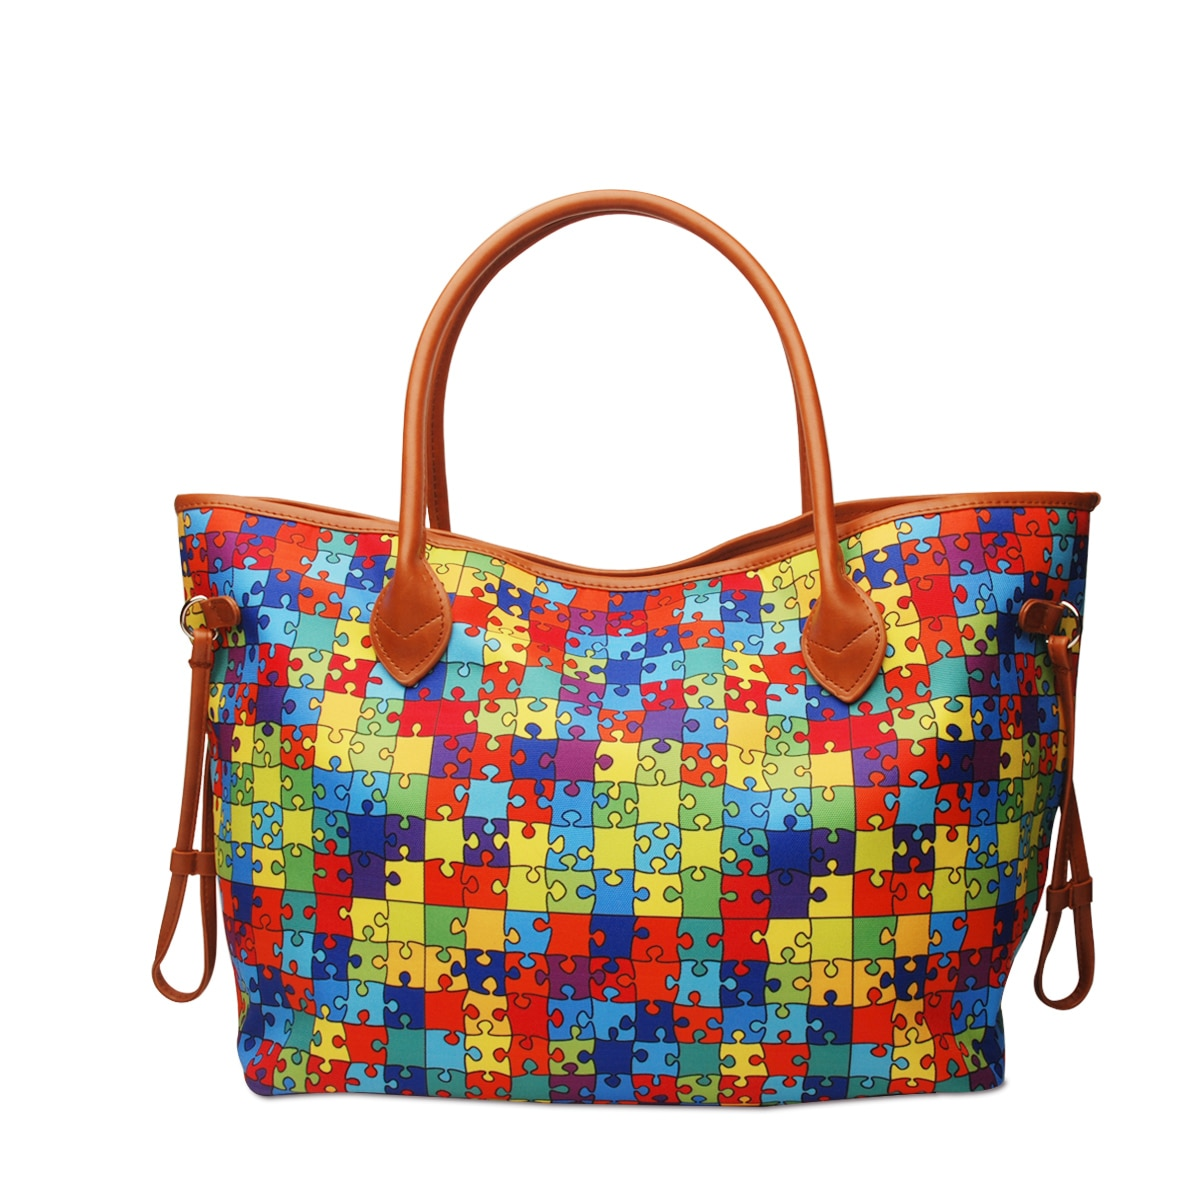 Rainbow Puzzel Tote Bag Personalize Weekend Purse DOM1071851 For Women Travel